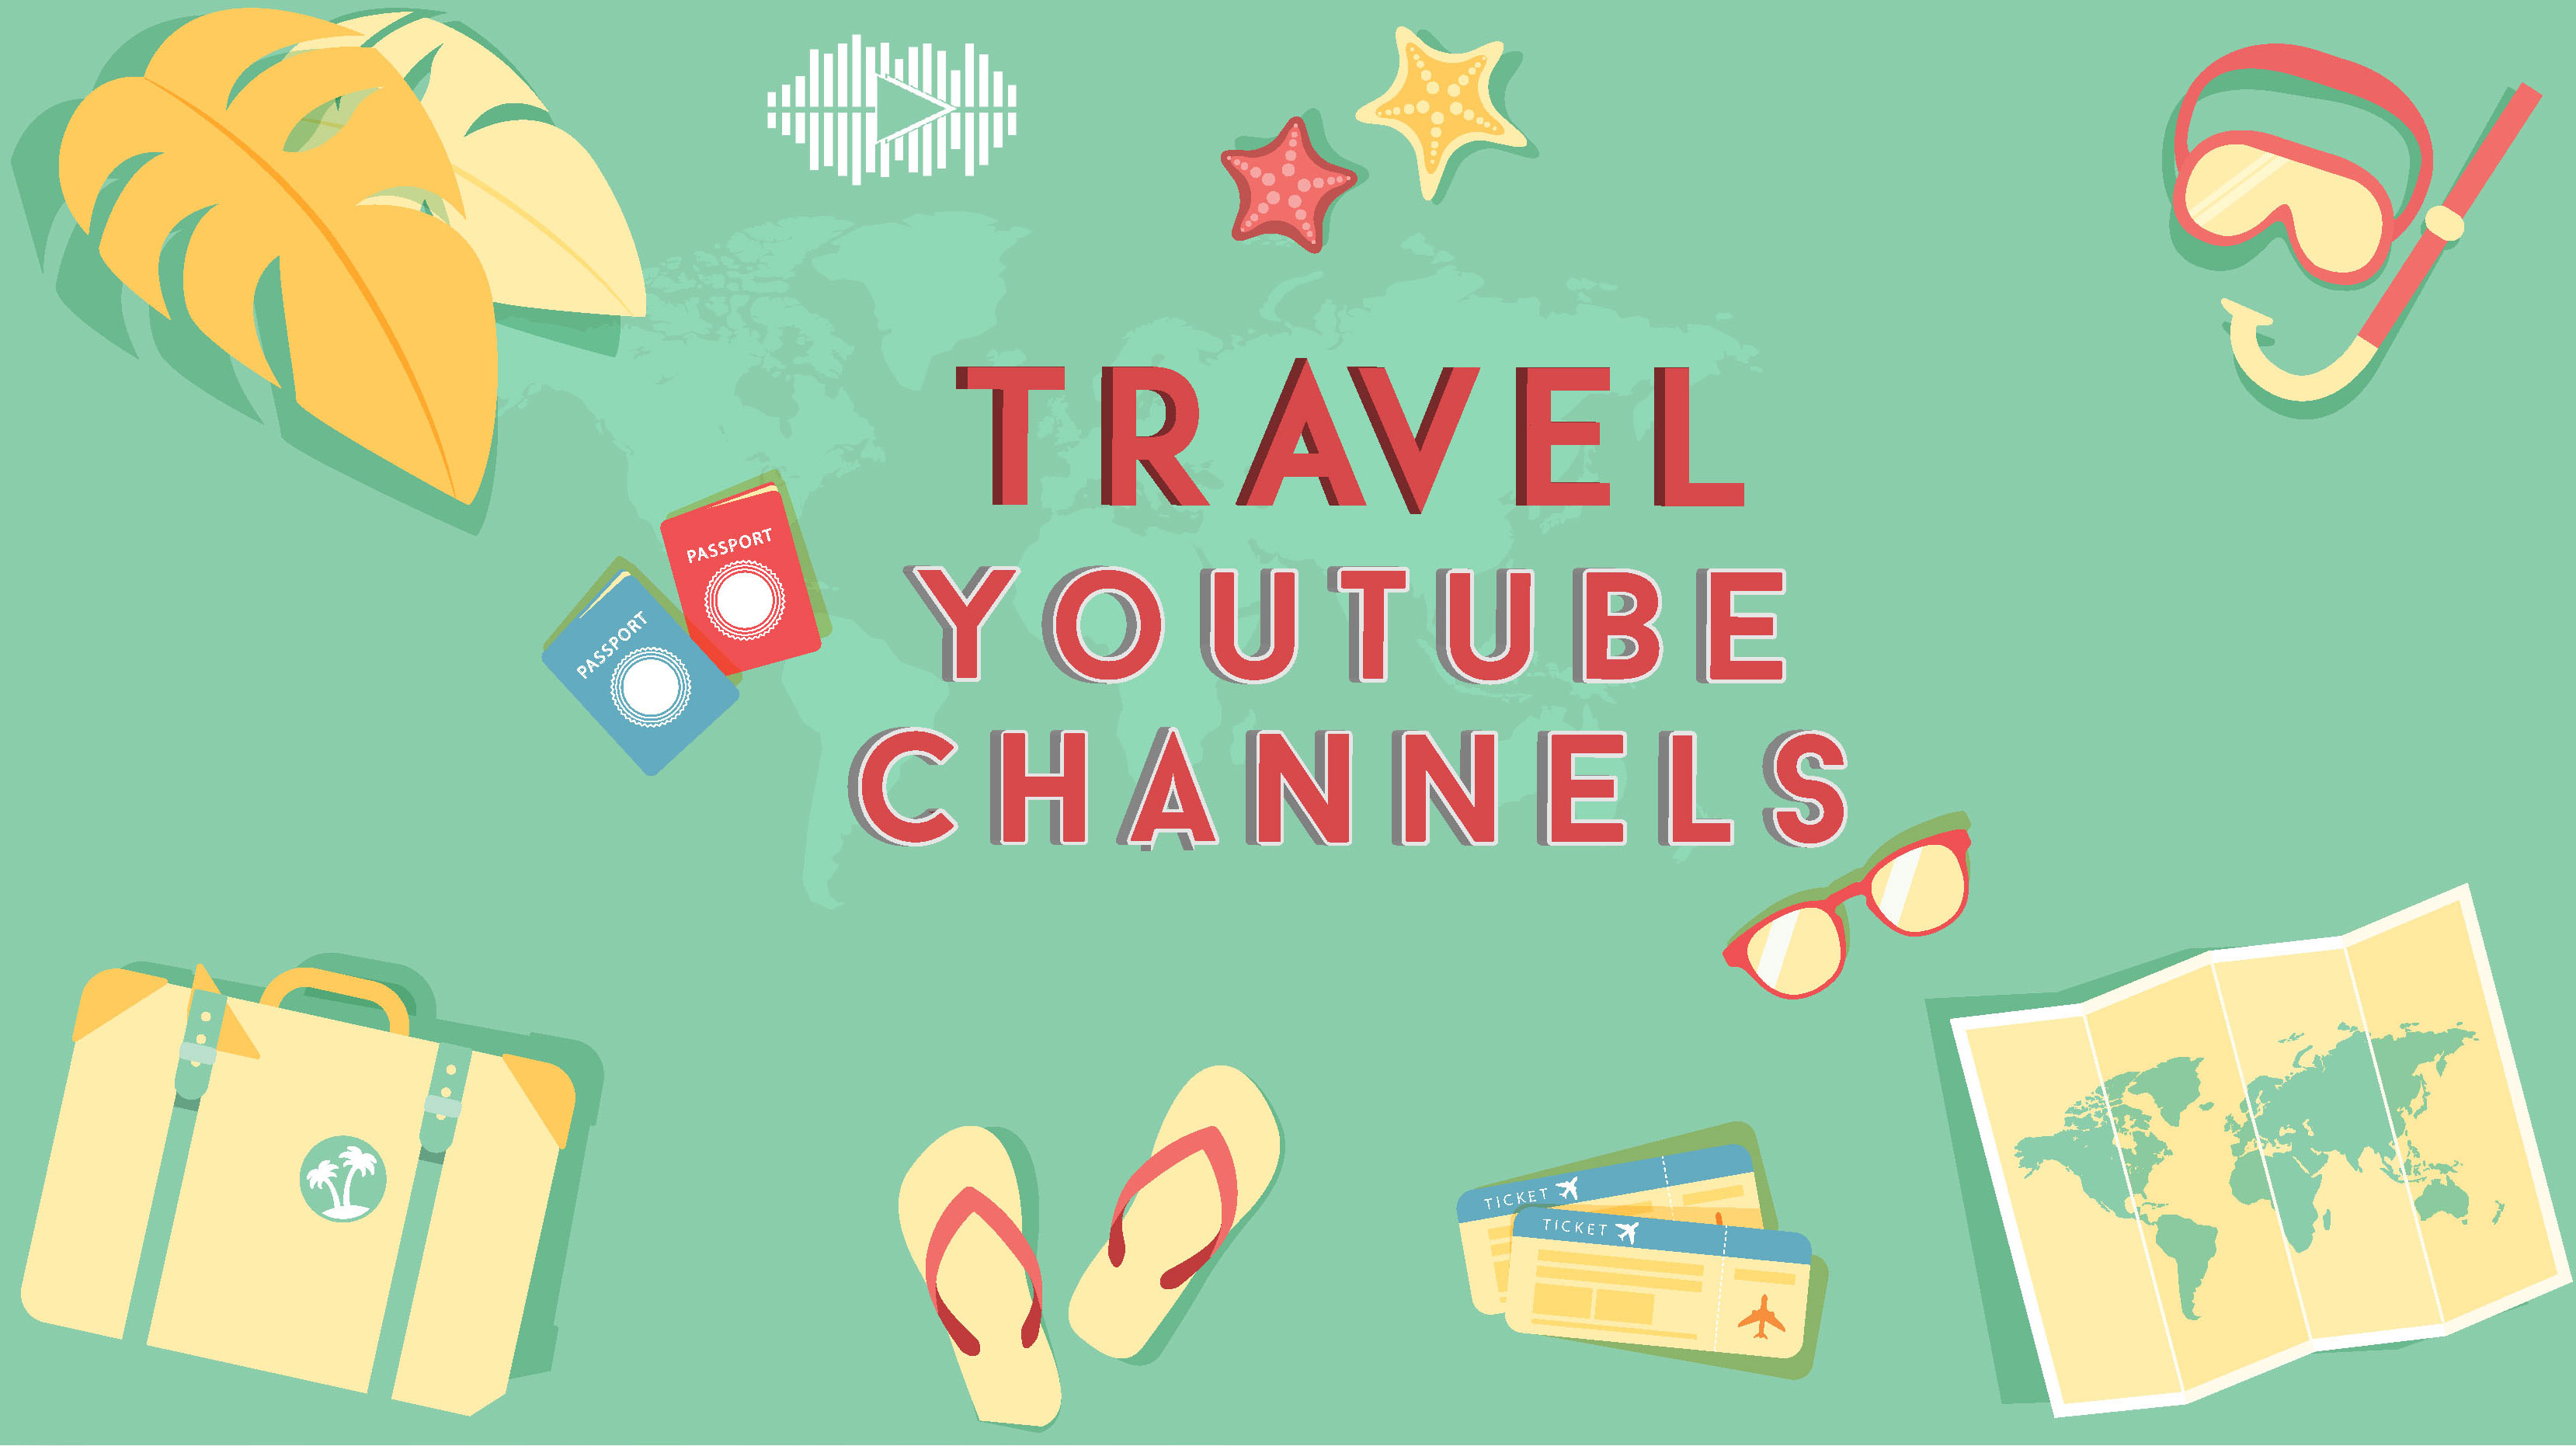 https://vidooly.com/blog/wp-content/uploads/2016/08/top-subscribed-YouTube-channels-that-will-make-you-a-better-traveler.jpg